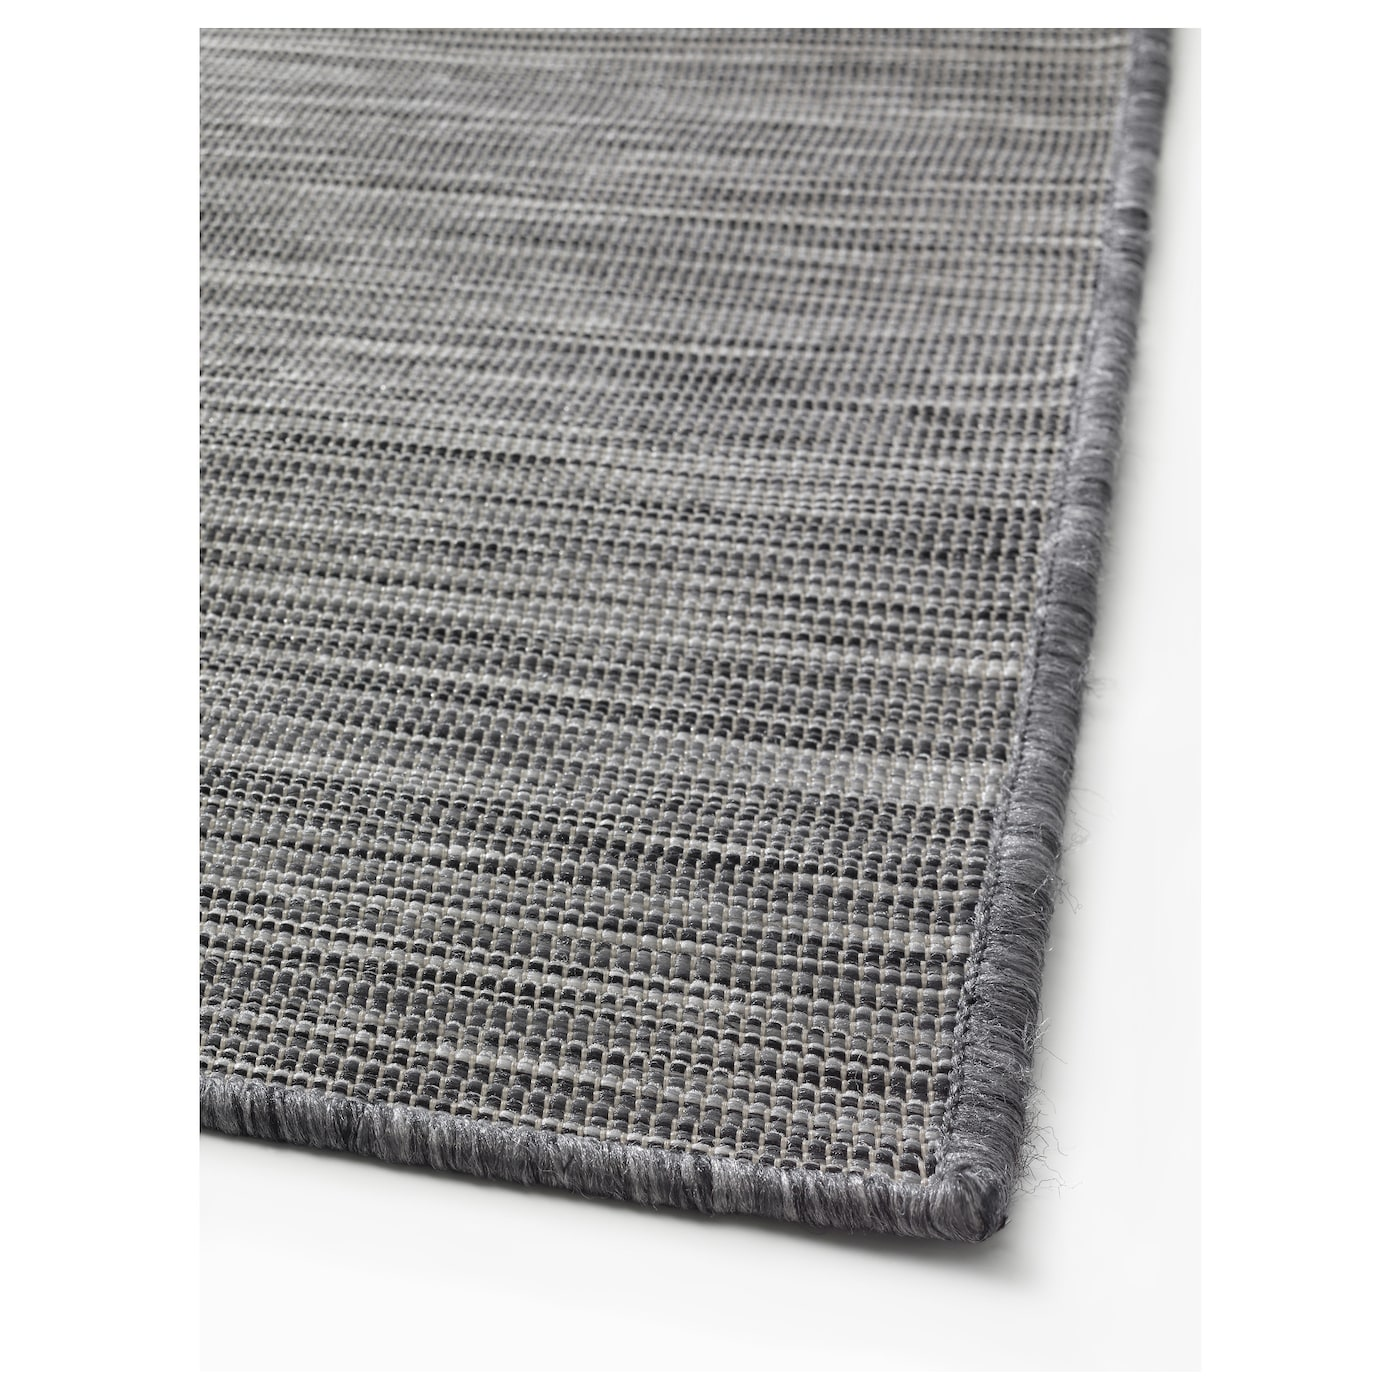 hodde rug flatwoven in outdoor grey black 160 x 230 cm ikea. Black Bedroom Furniture Sets. Home Design Ideas